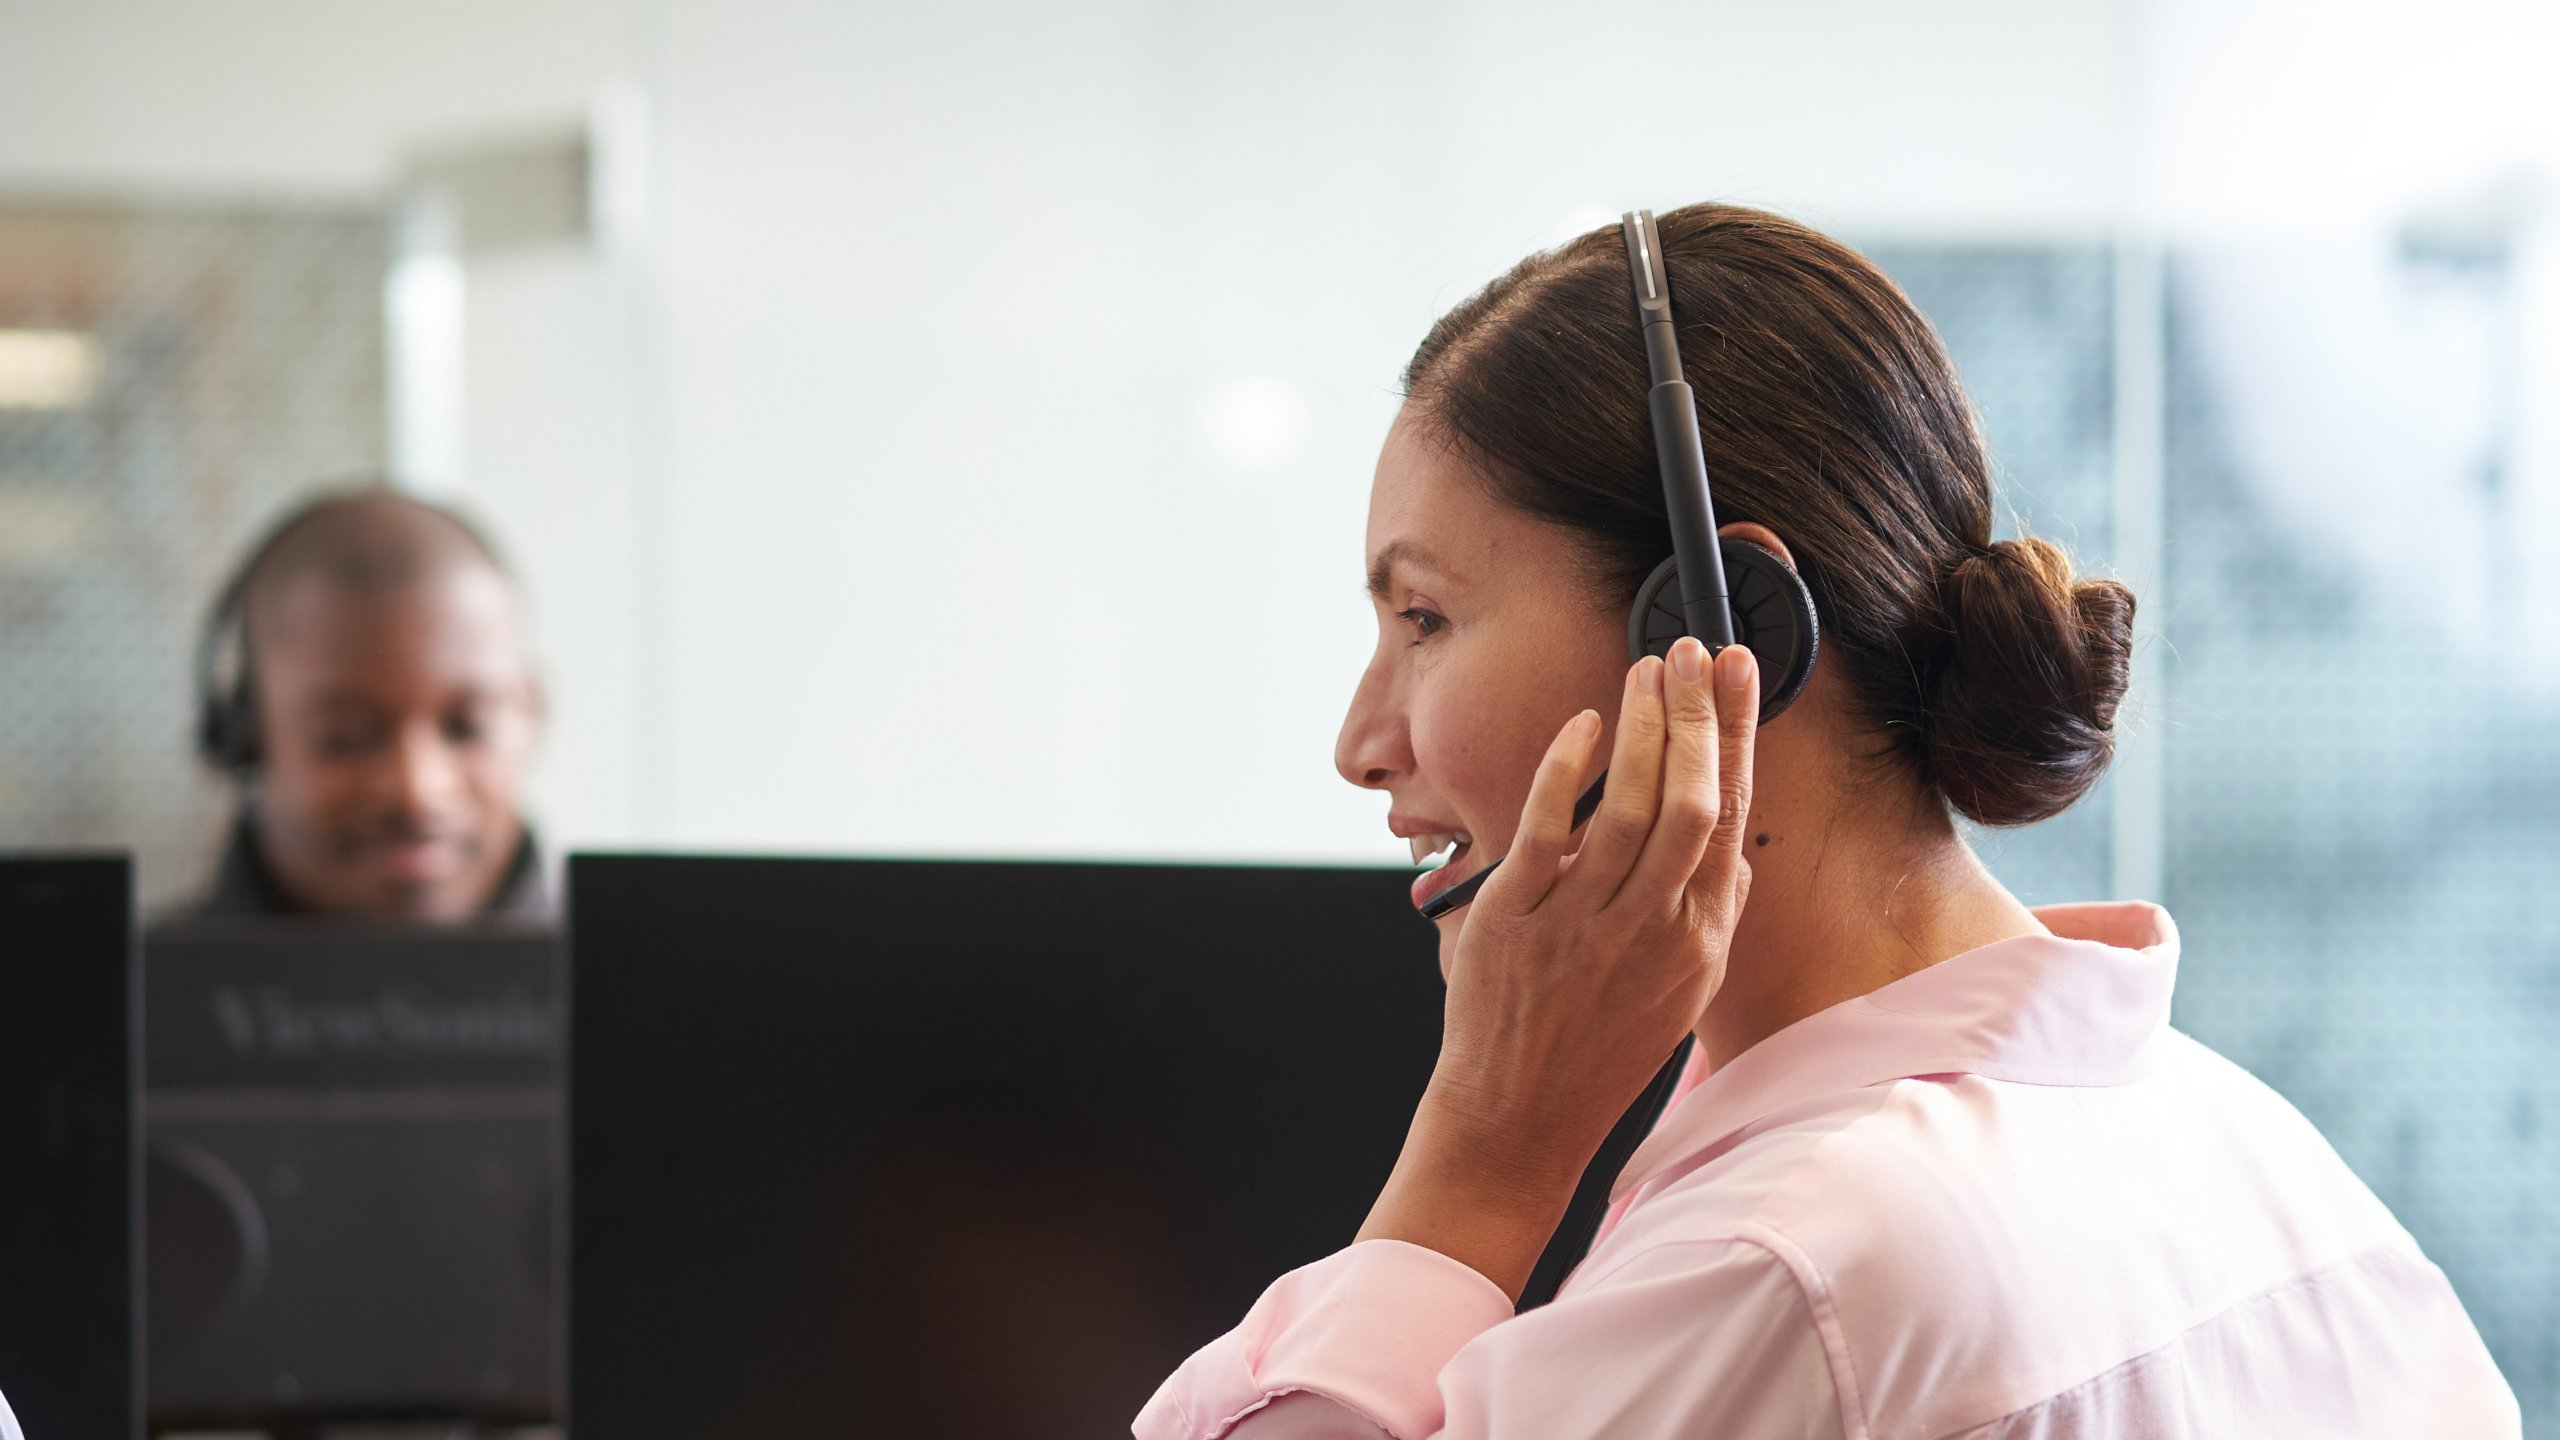 customer care representative speaking into a headset while sitting in front of a computer